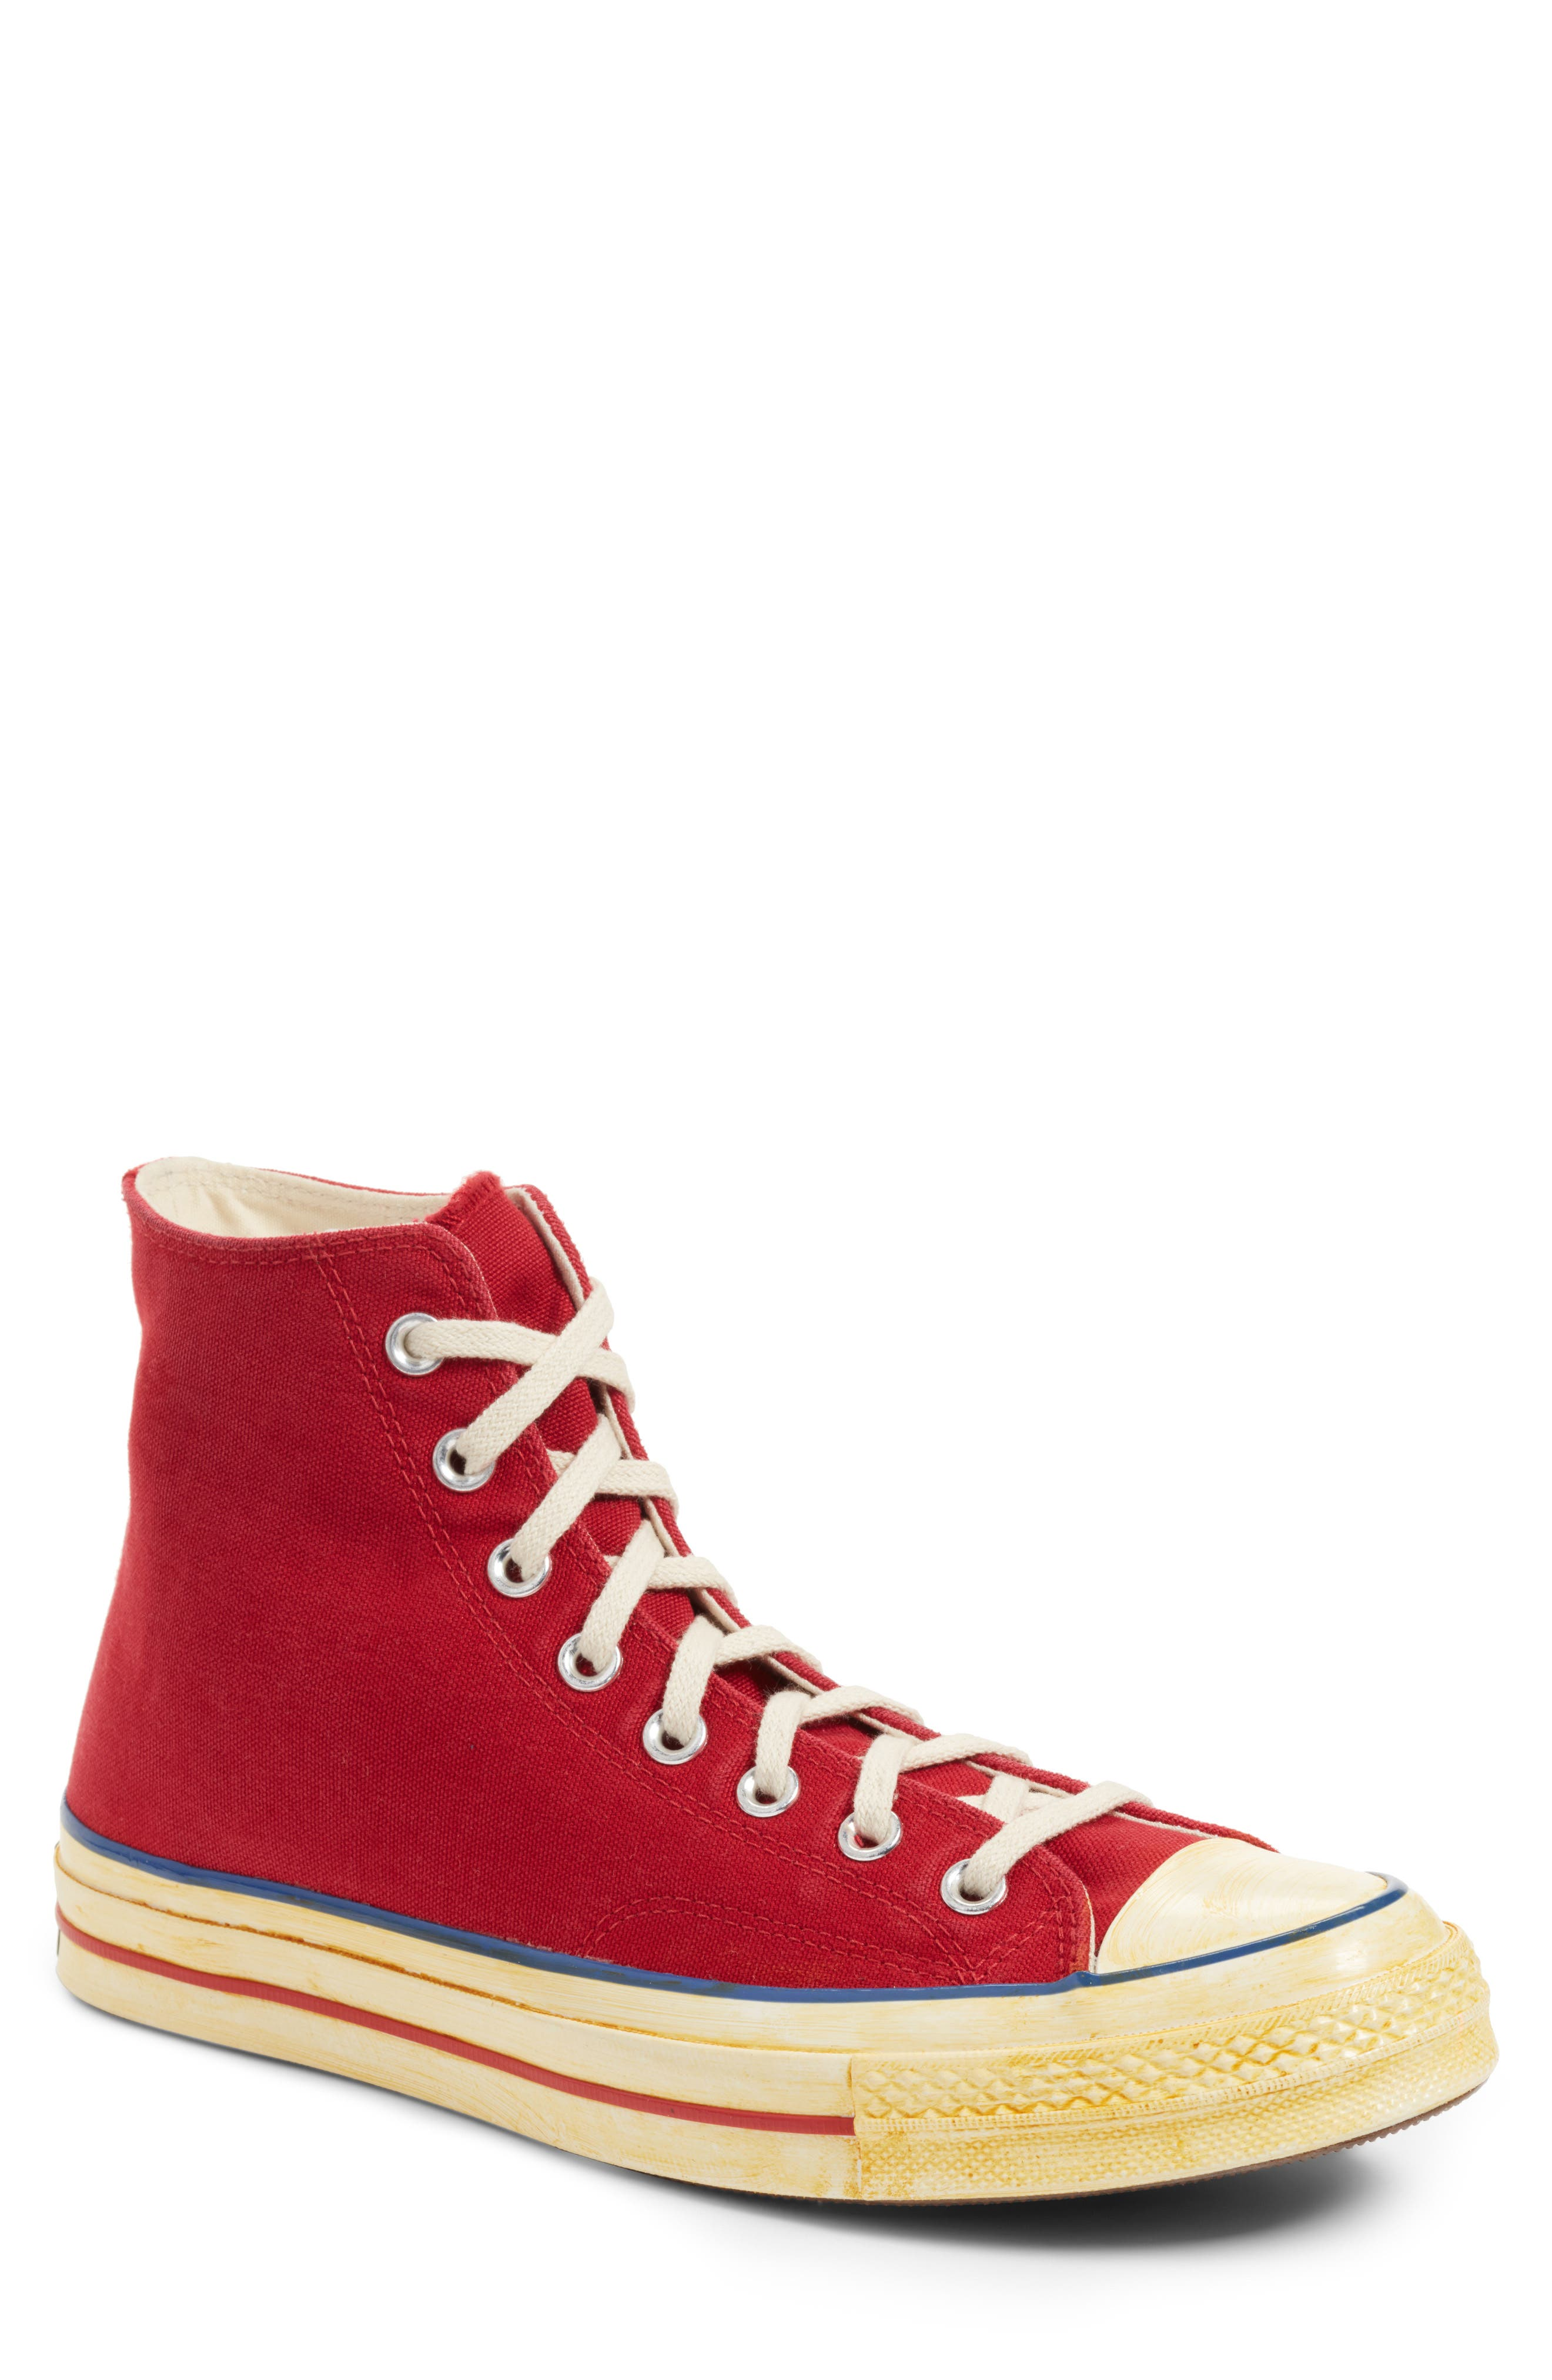 Chuck Taylor<sup>®</sup> All Star<sup>®</sup> 70 High Top Sneaker,                             Main thumbnail 1, color,                             Red